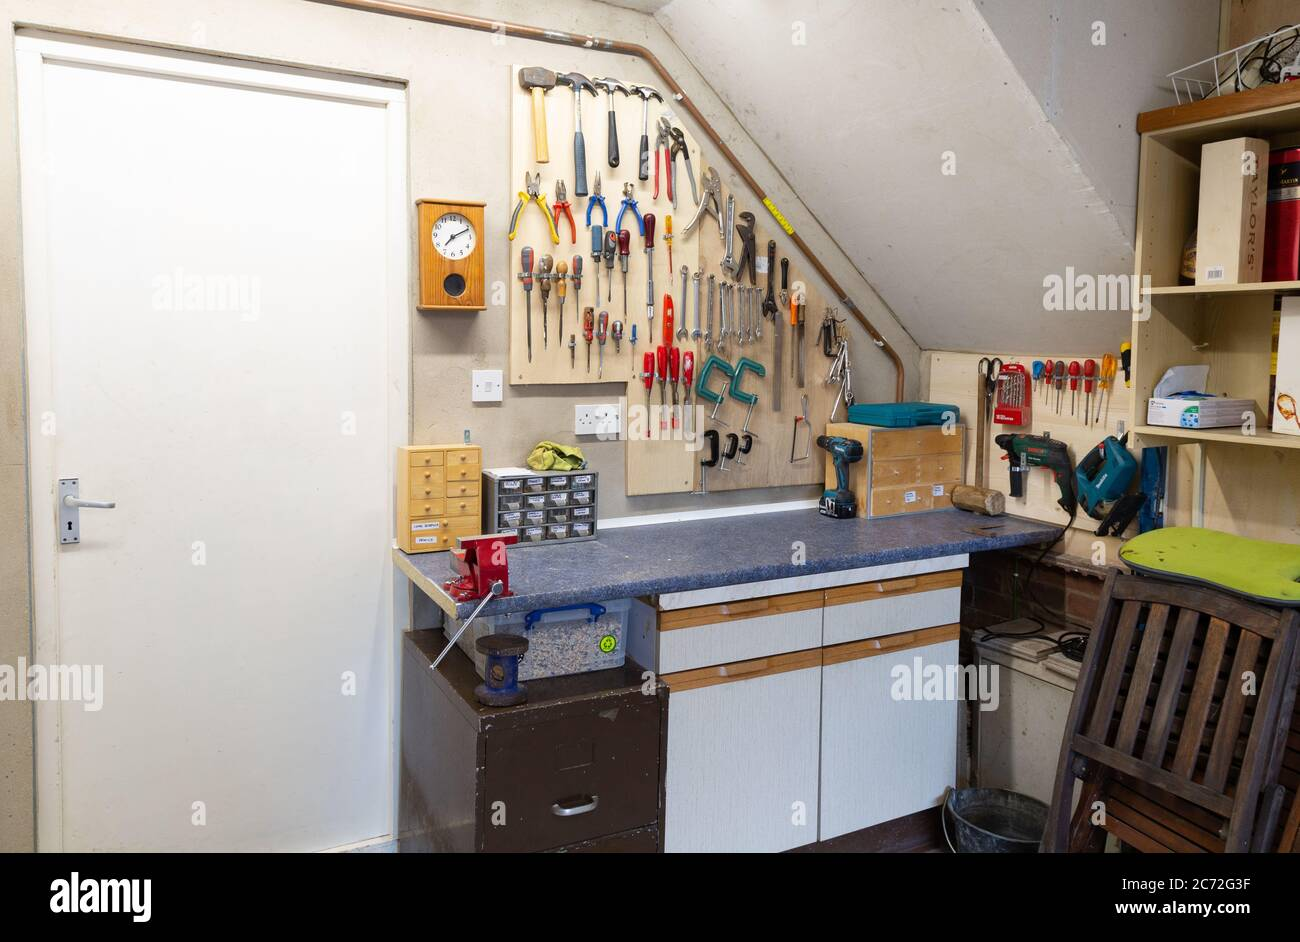 indoor-diy-workshop-and-tools-built-in-a-domestic-garage-during-lockdown-example-of-lockdown-activities-suffolk-england-uk-2C72G3F.jpg